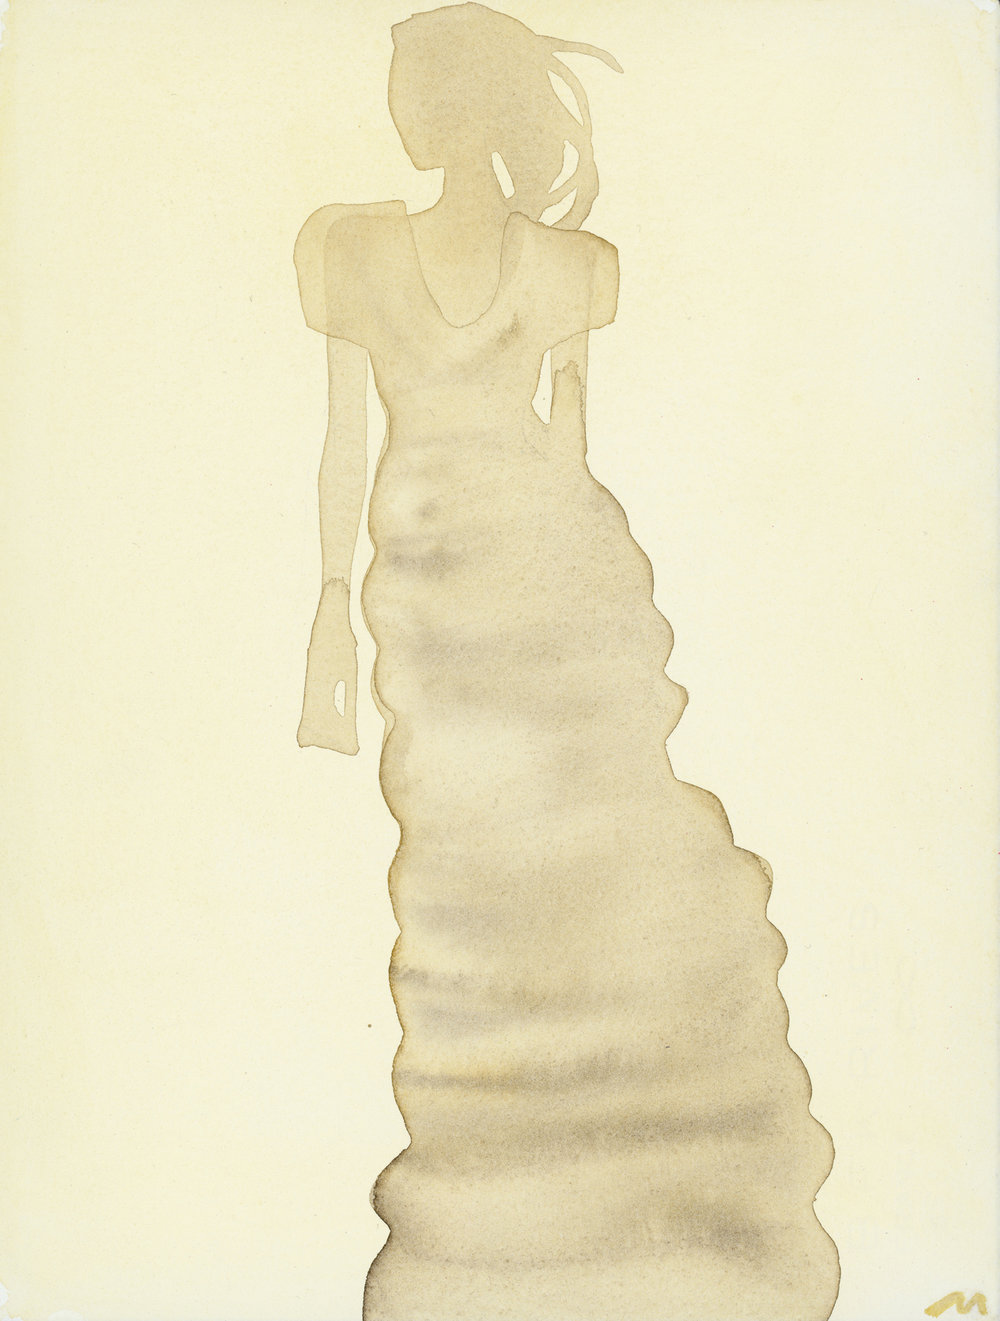 Mats Gustafson   Silhouette (Dress by Calvin Klein)  For Vogue China 2010 Watercolor 38 x 28,5 cm